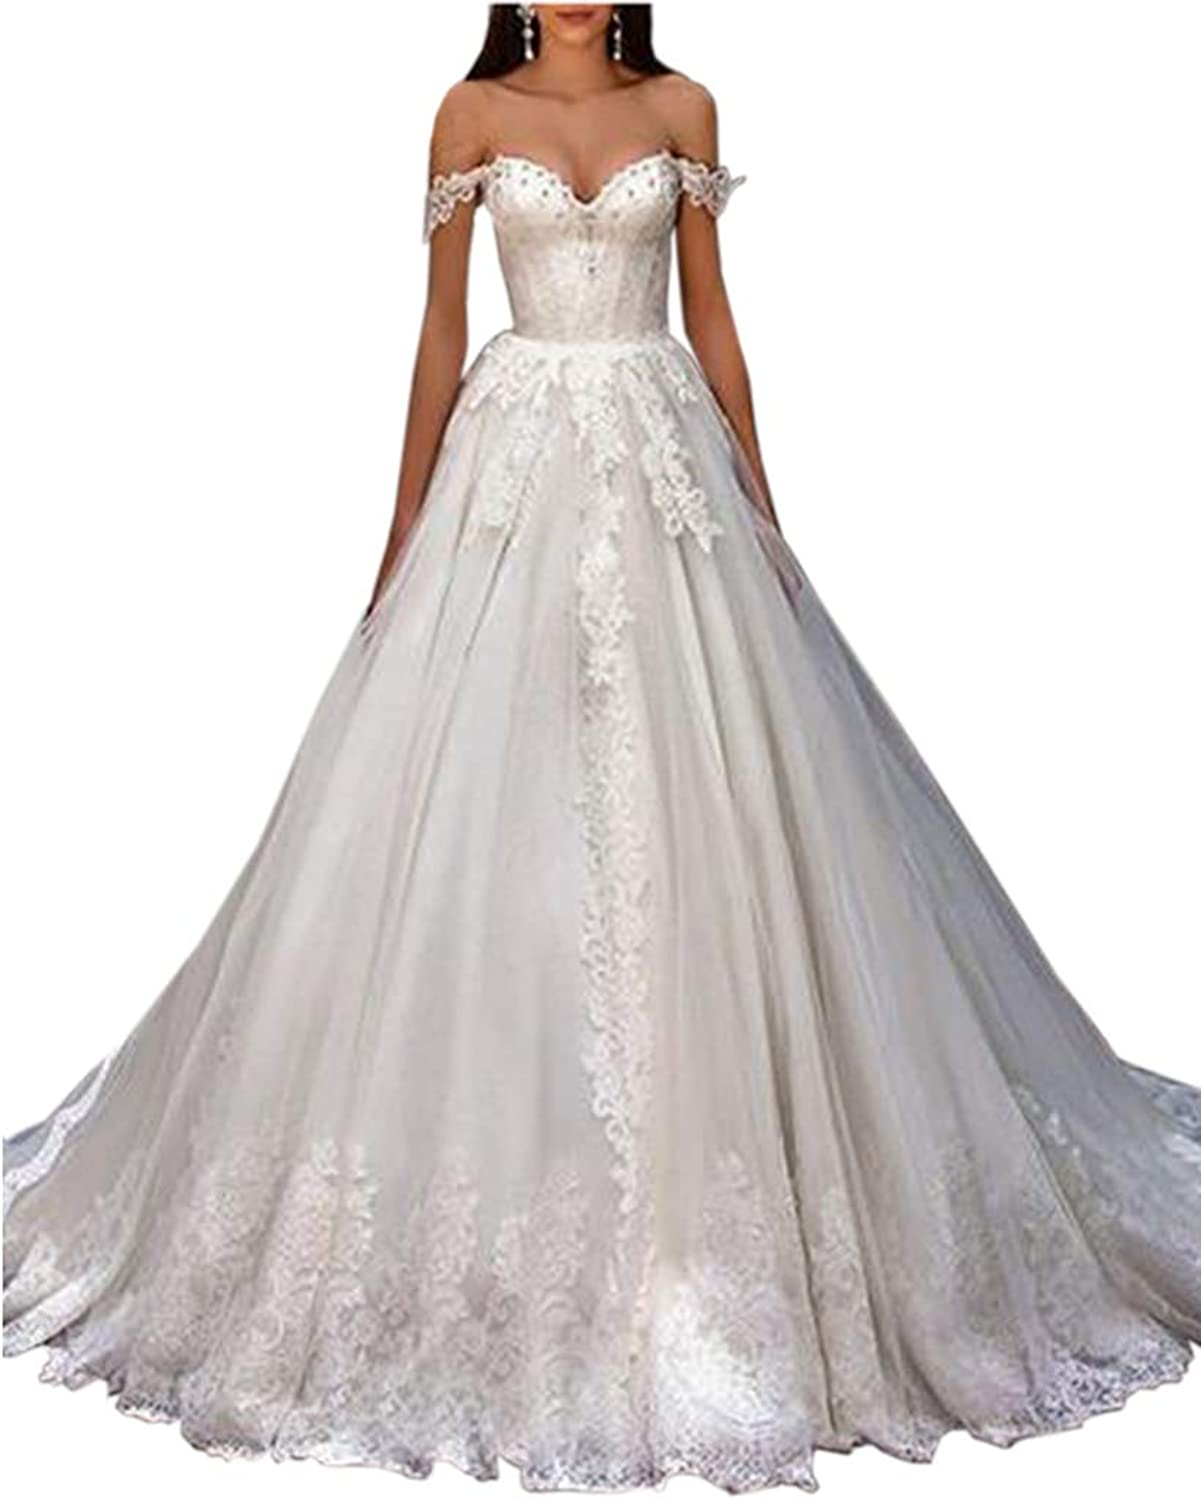 ONLYCE A Line Off Shoulder Beaded Long Wedding Dress with Appliques